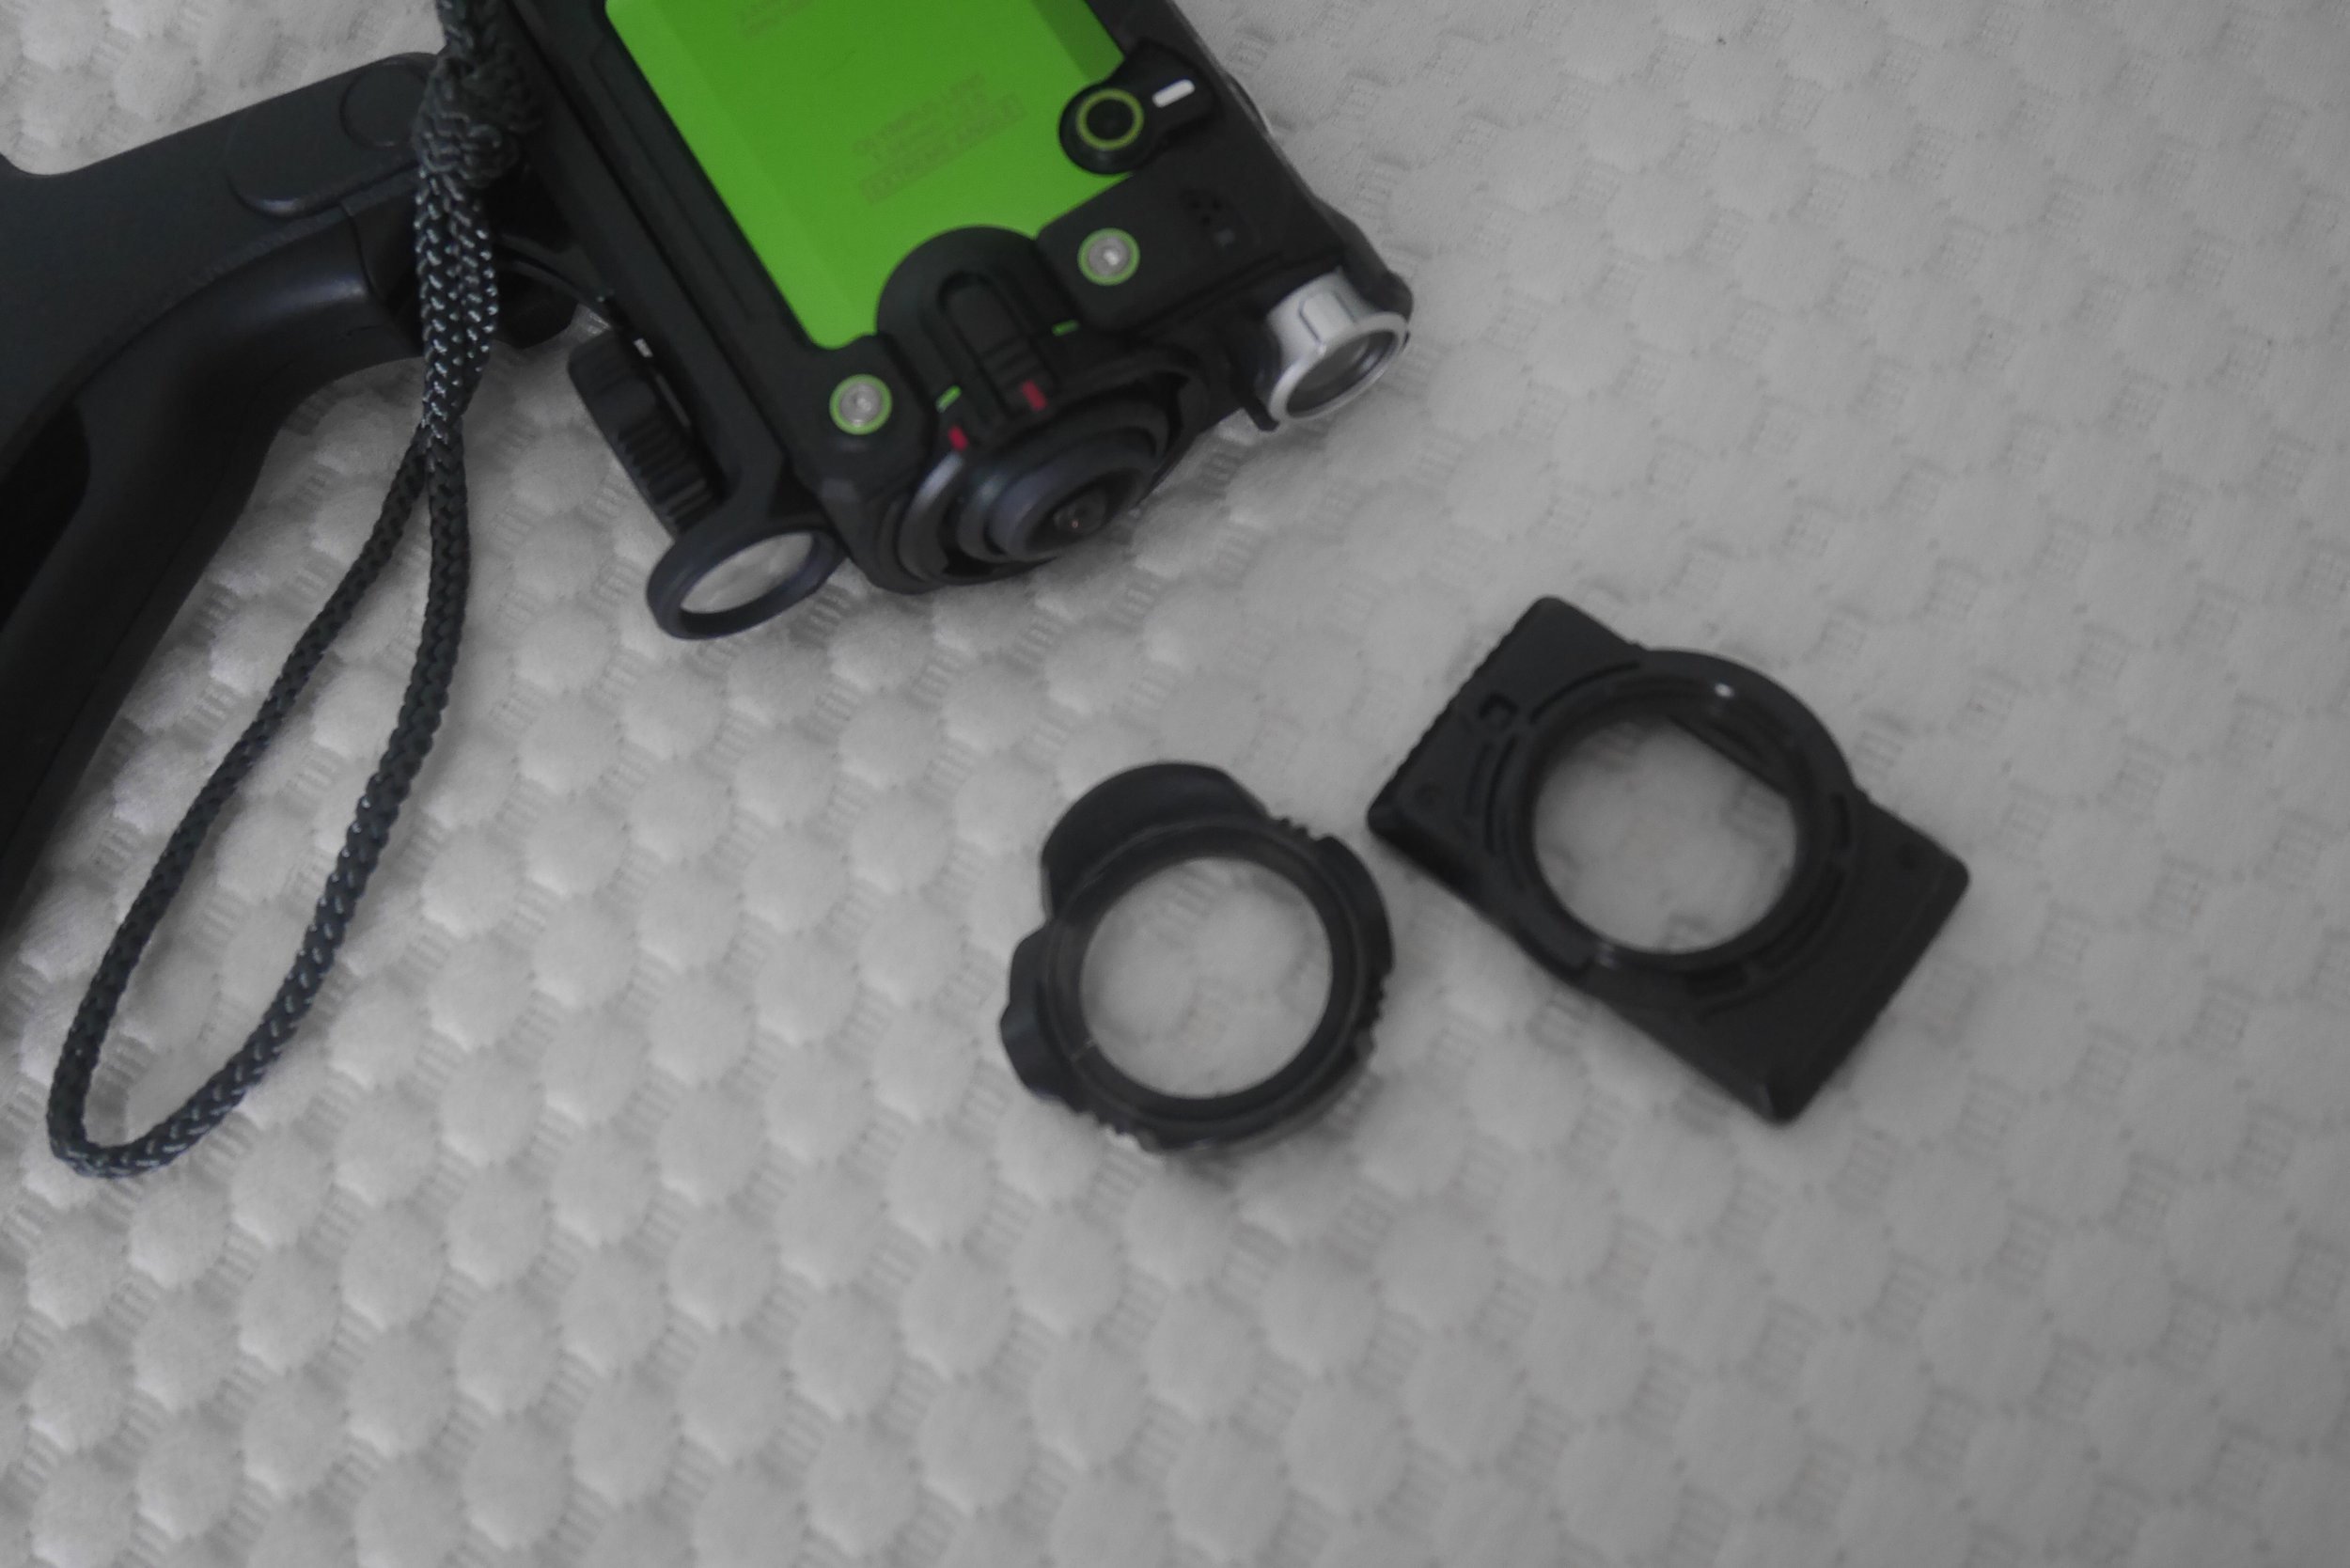 The Tracker's default lens protector and the rectangular protector for use underwater.